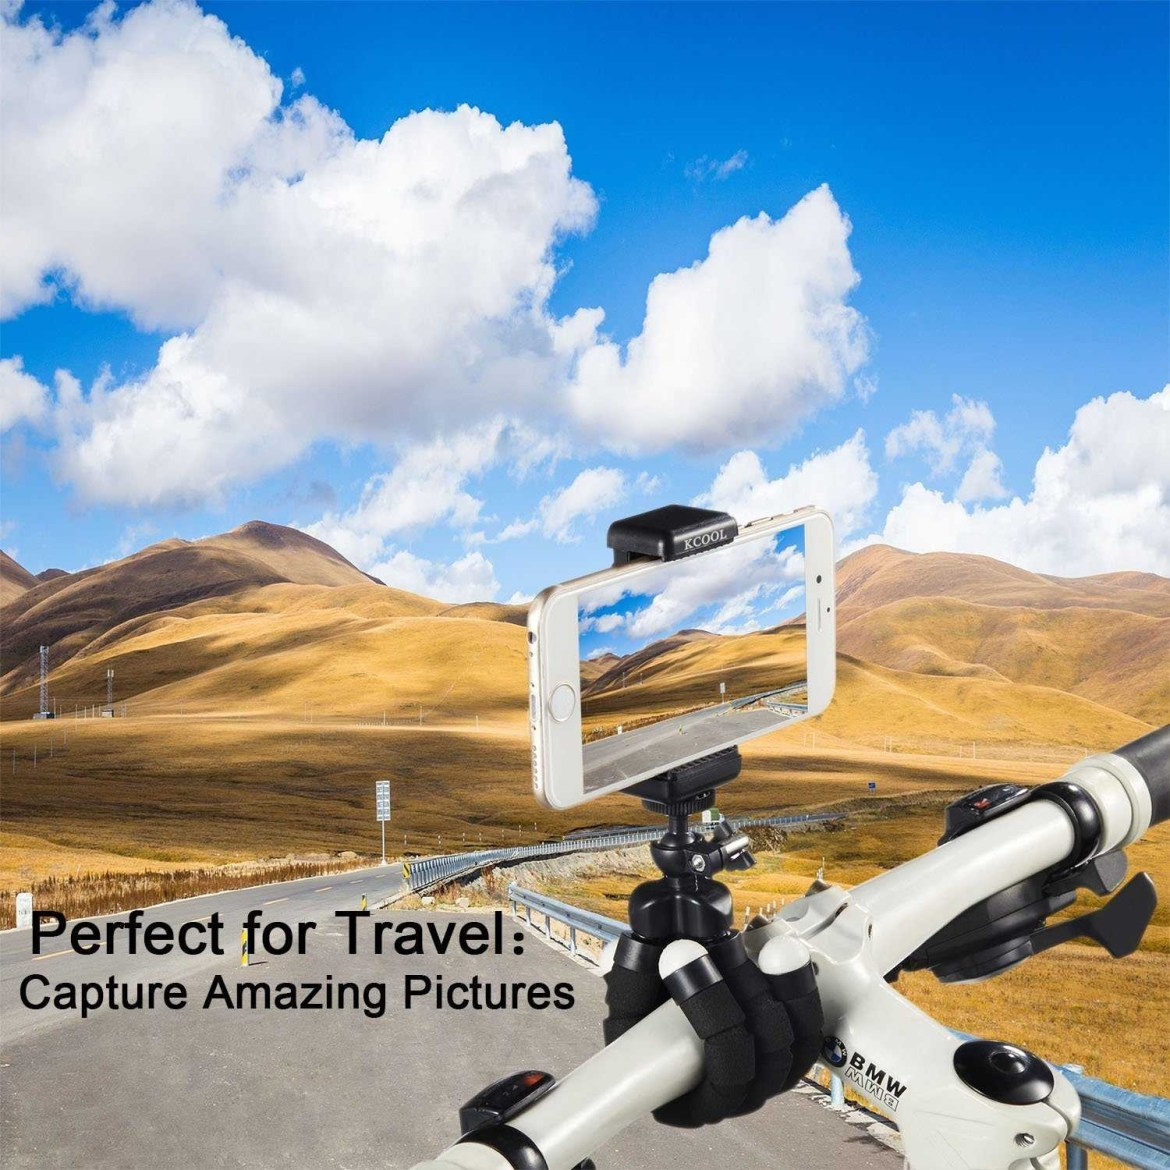 6bd0d28403bdec48dde5d7b2afbf2579 Octopus Tripod Stand Holder Universal Clip & Remote For Smartphones & Camera   Black